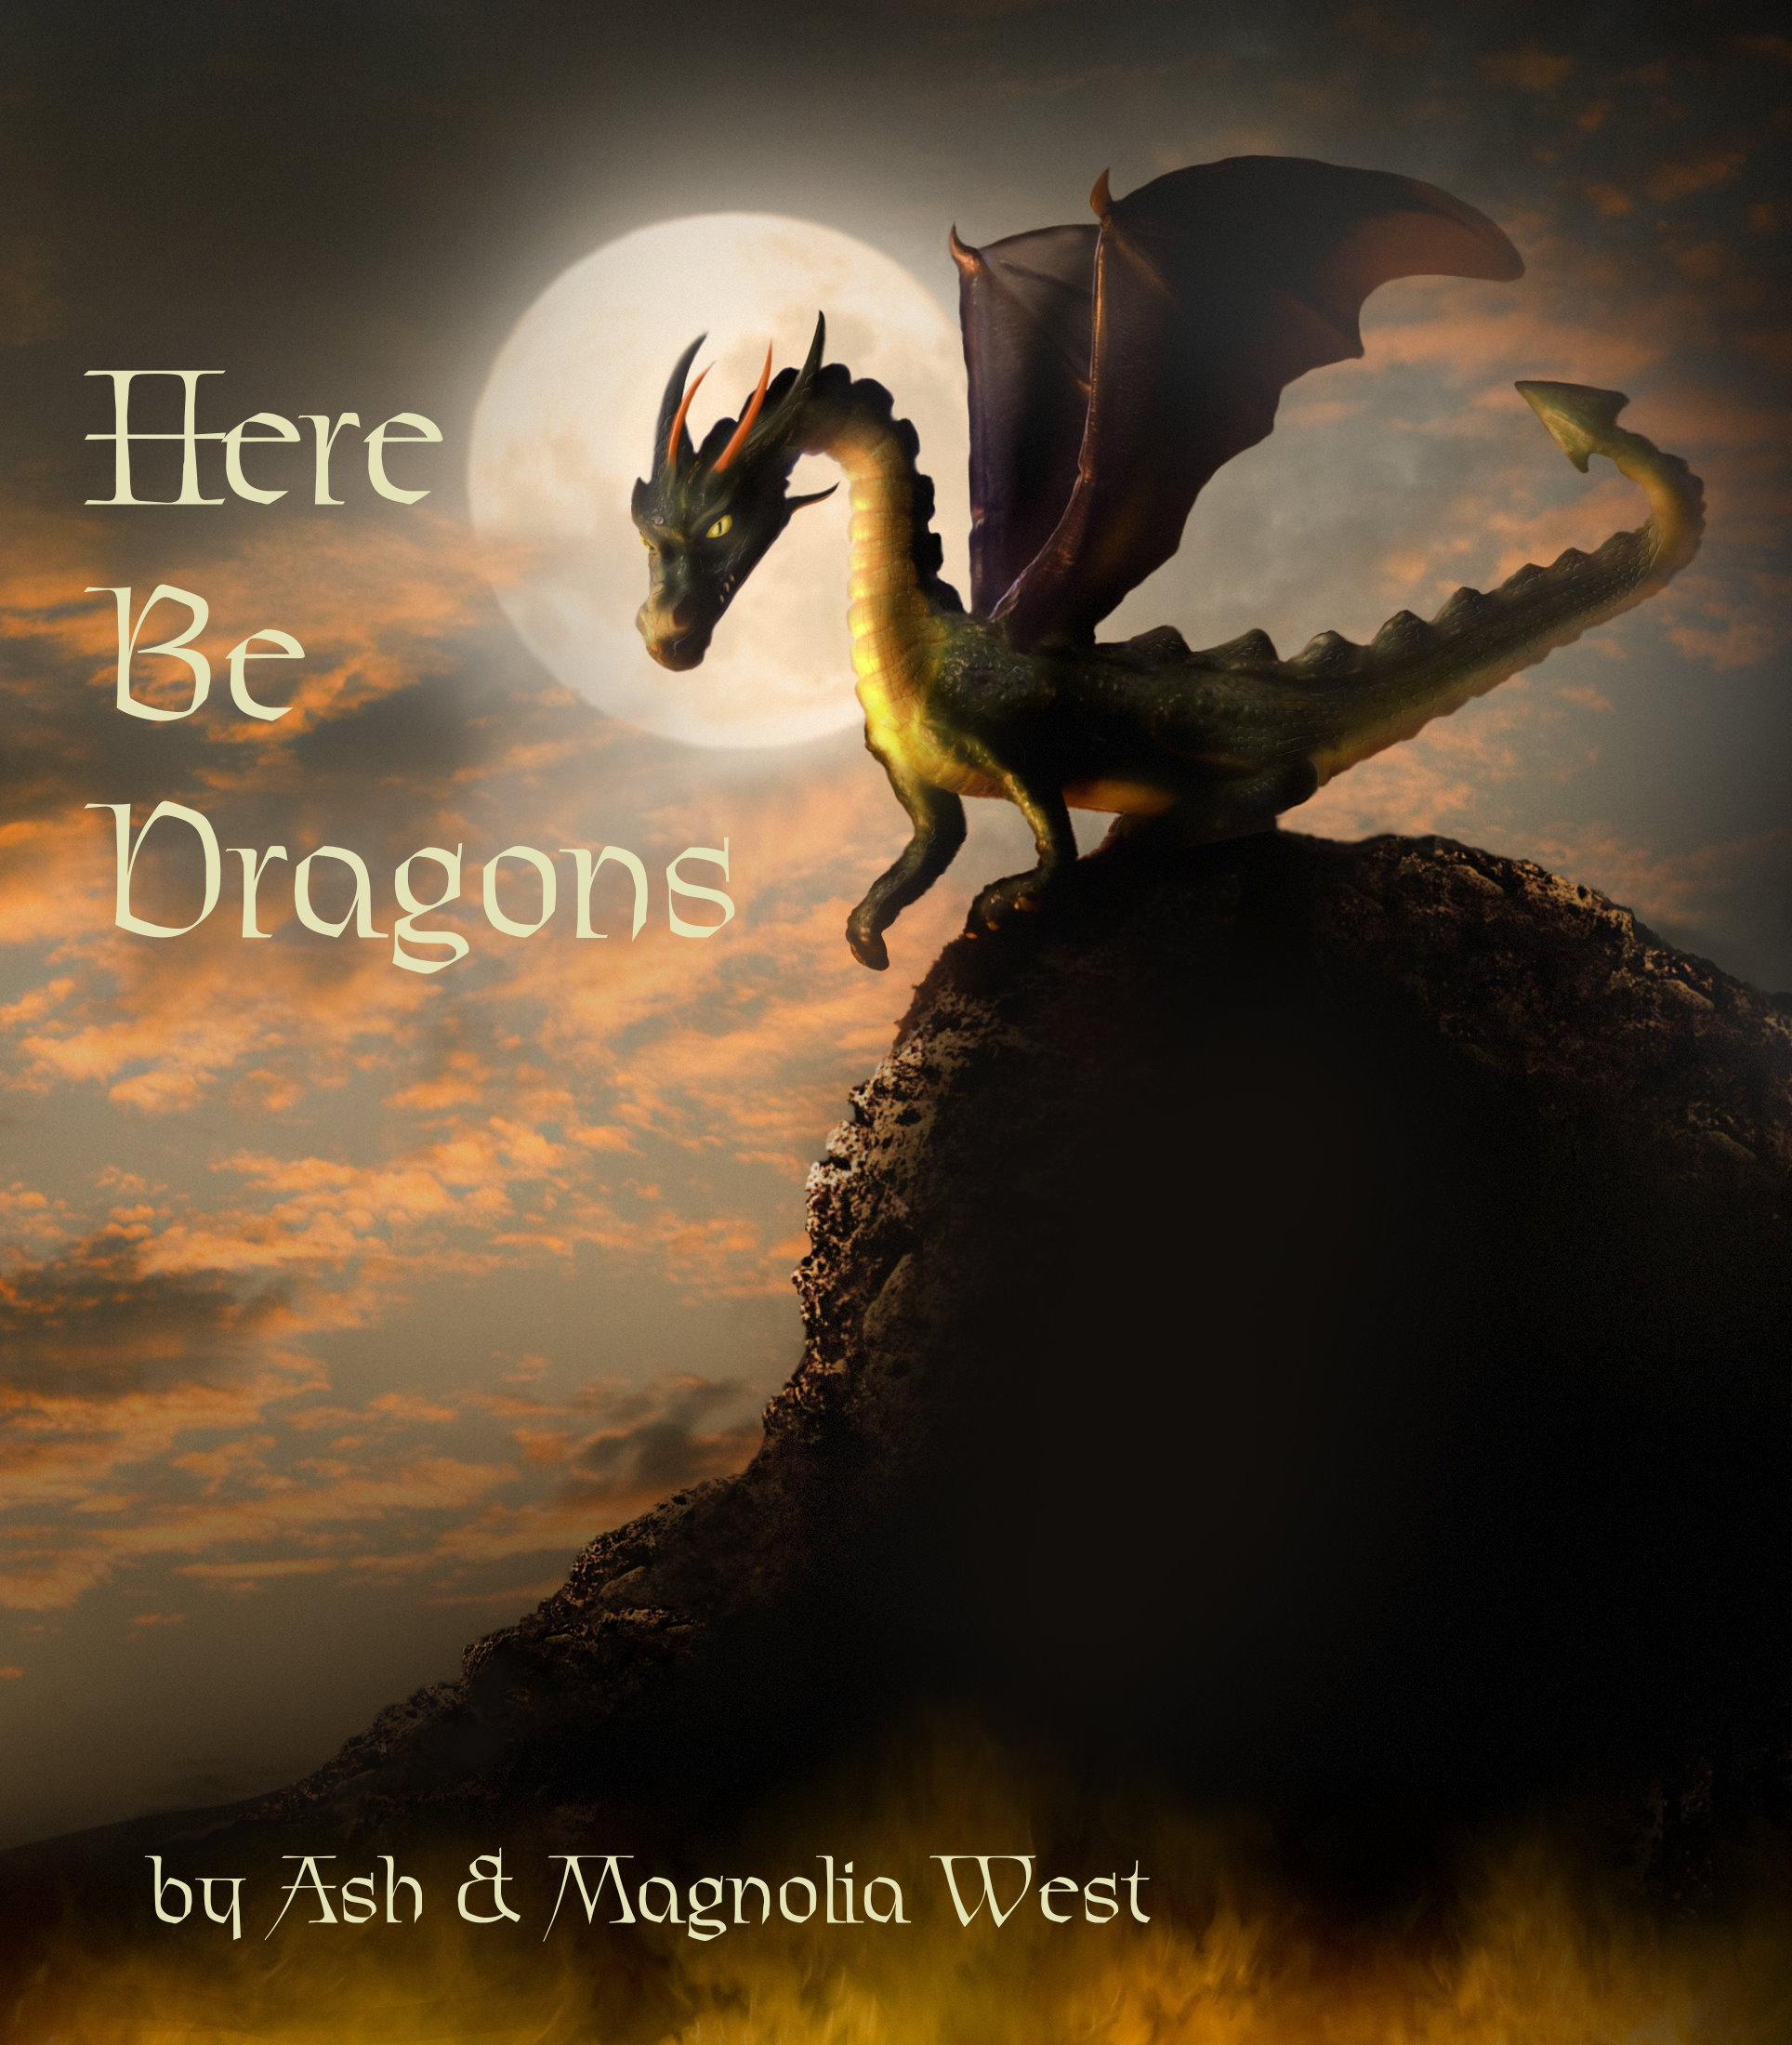 HERE BE DRAGONS :: A BOOK WRITTEN BY ASH & MAGNOLIA REVIEWING 75 RACES OF DRAGON